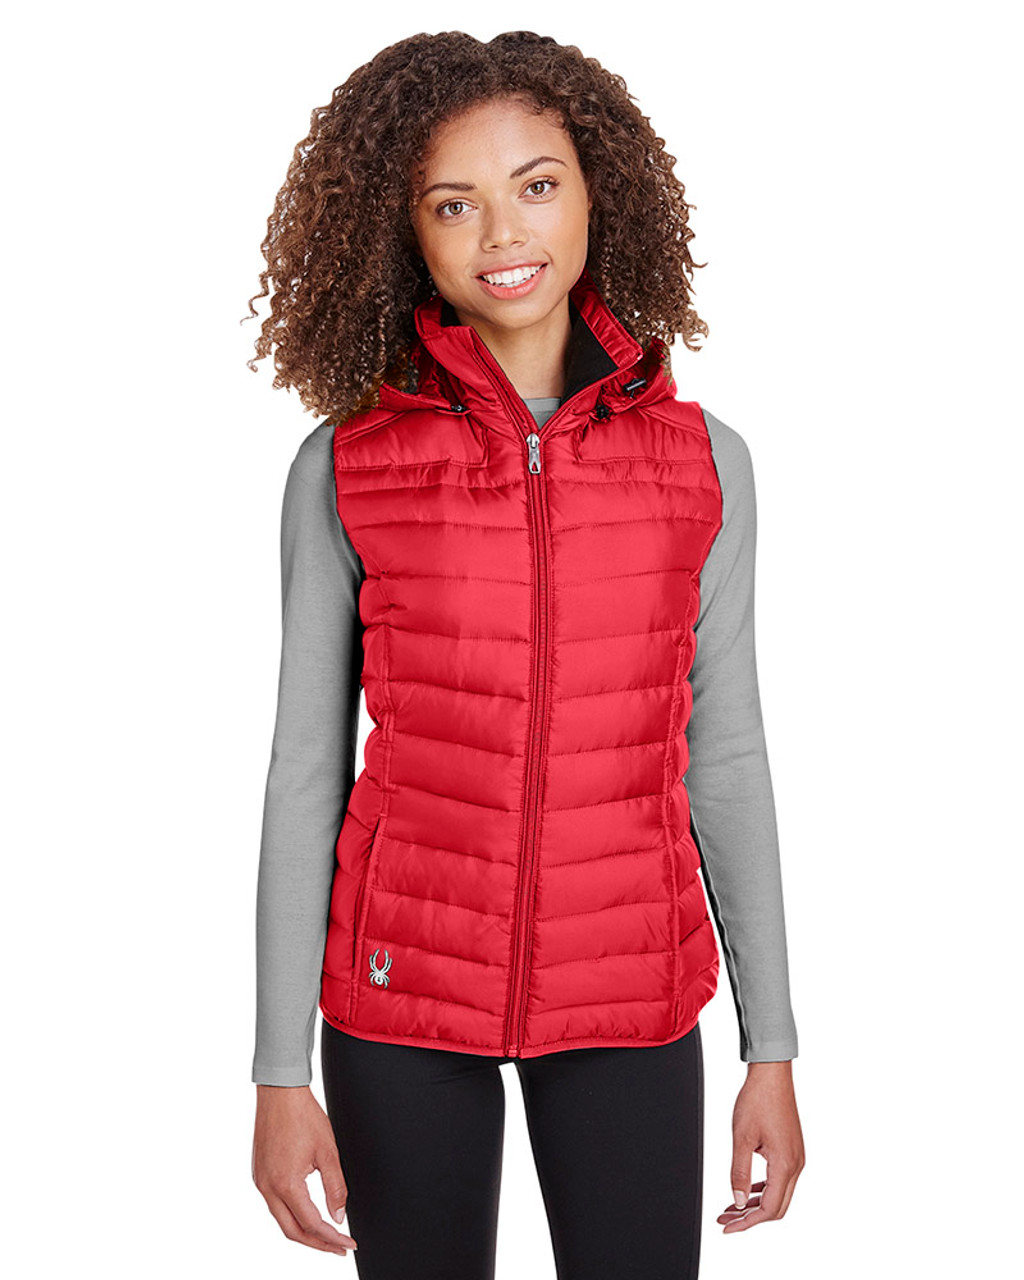 Red - S16641 Spyder Ladies' Supreme Puffer Vest | Blankclothing.ca